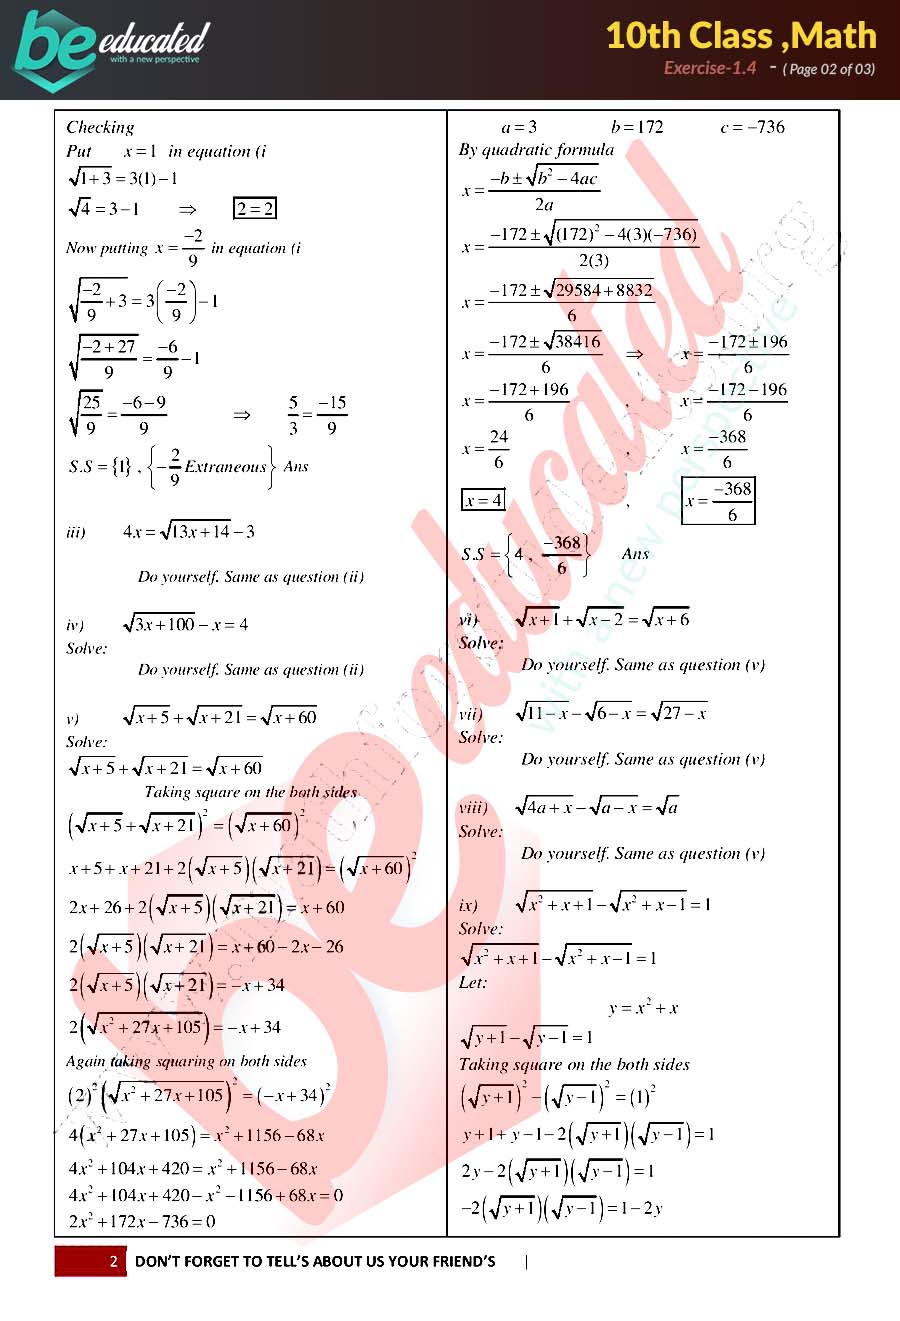 Exercise 1 4 Math 10th Class Notes - Matric Part 2 Notes